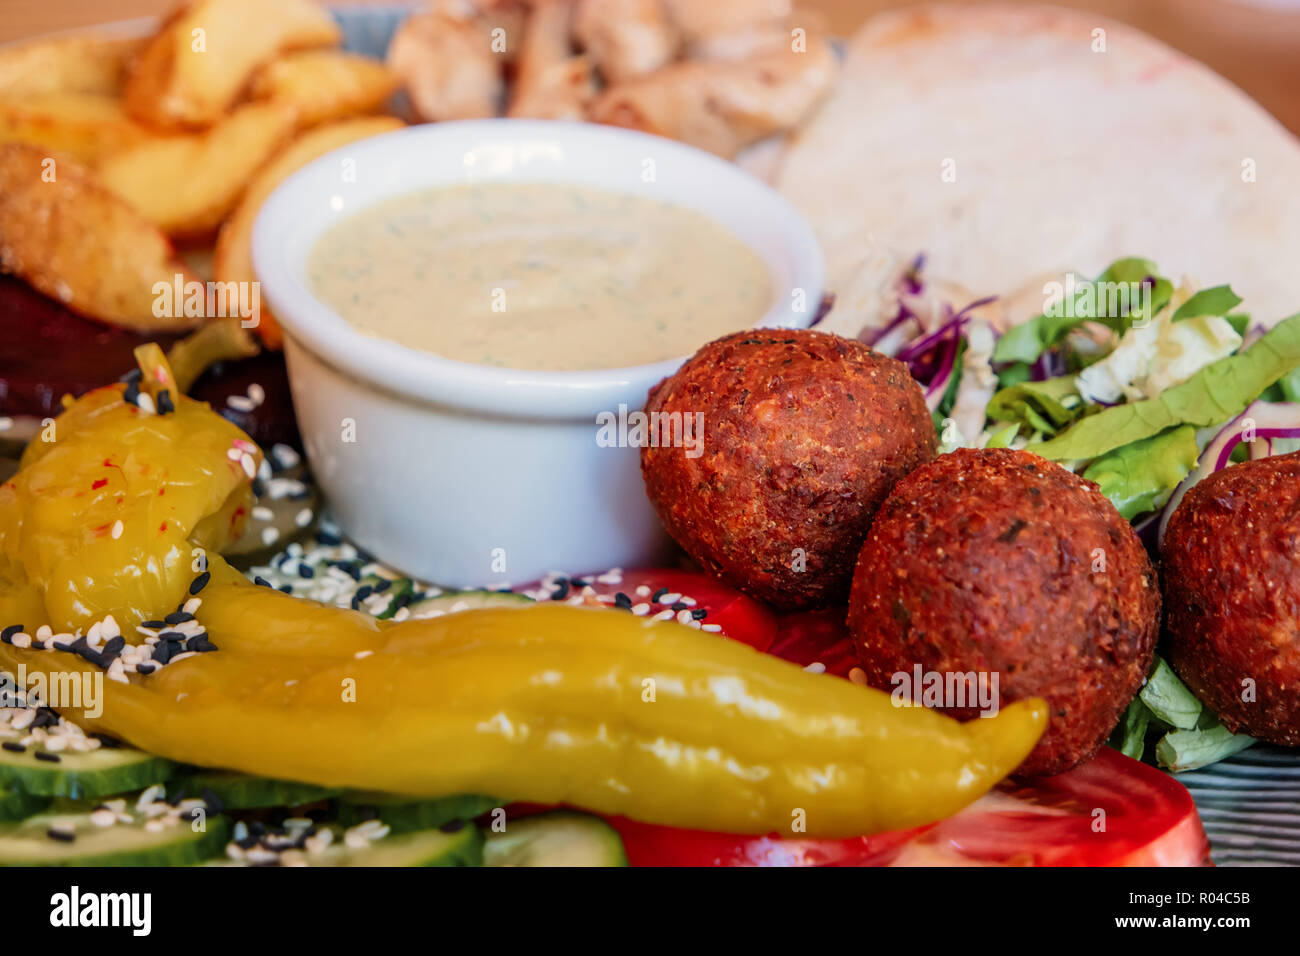 Dish with falafel, pepper and vegetables mix with bowl of souse in the center - Stock Image